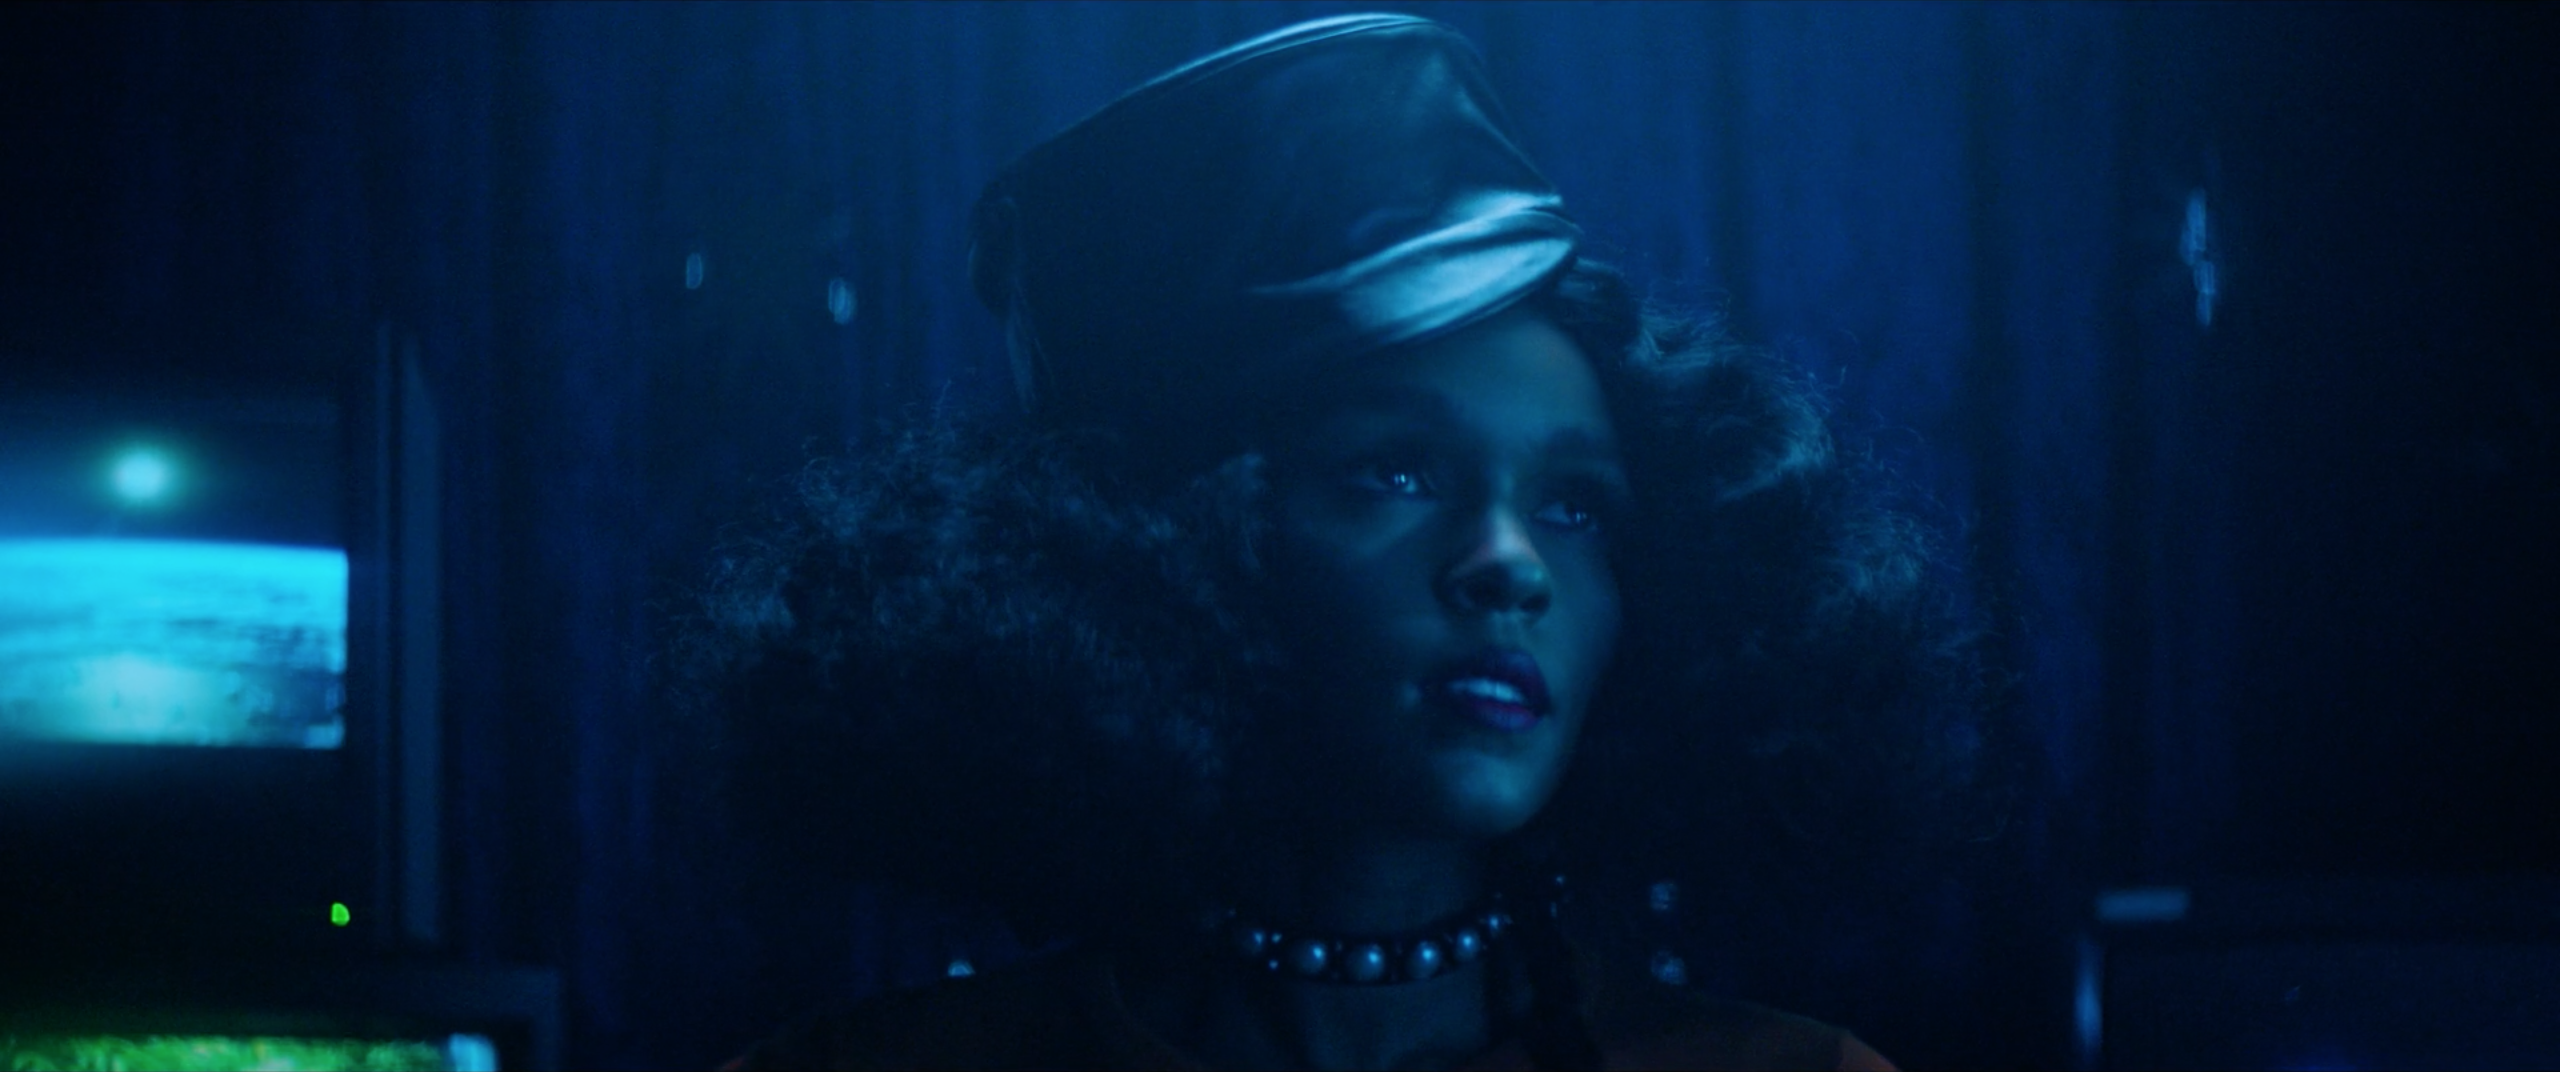 Spotify 'Janelle Monae' (FULL LENGTH)